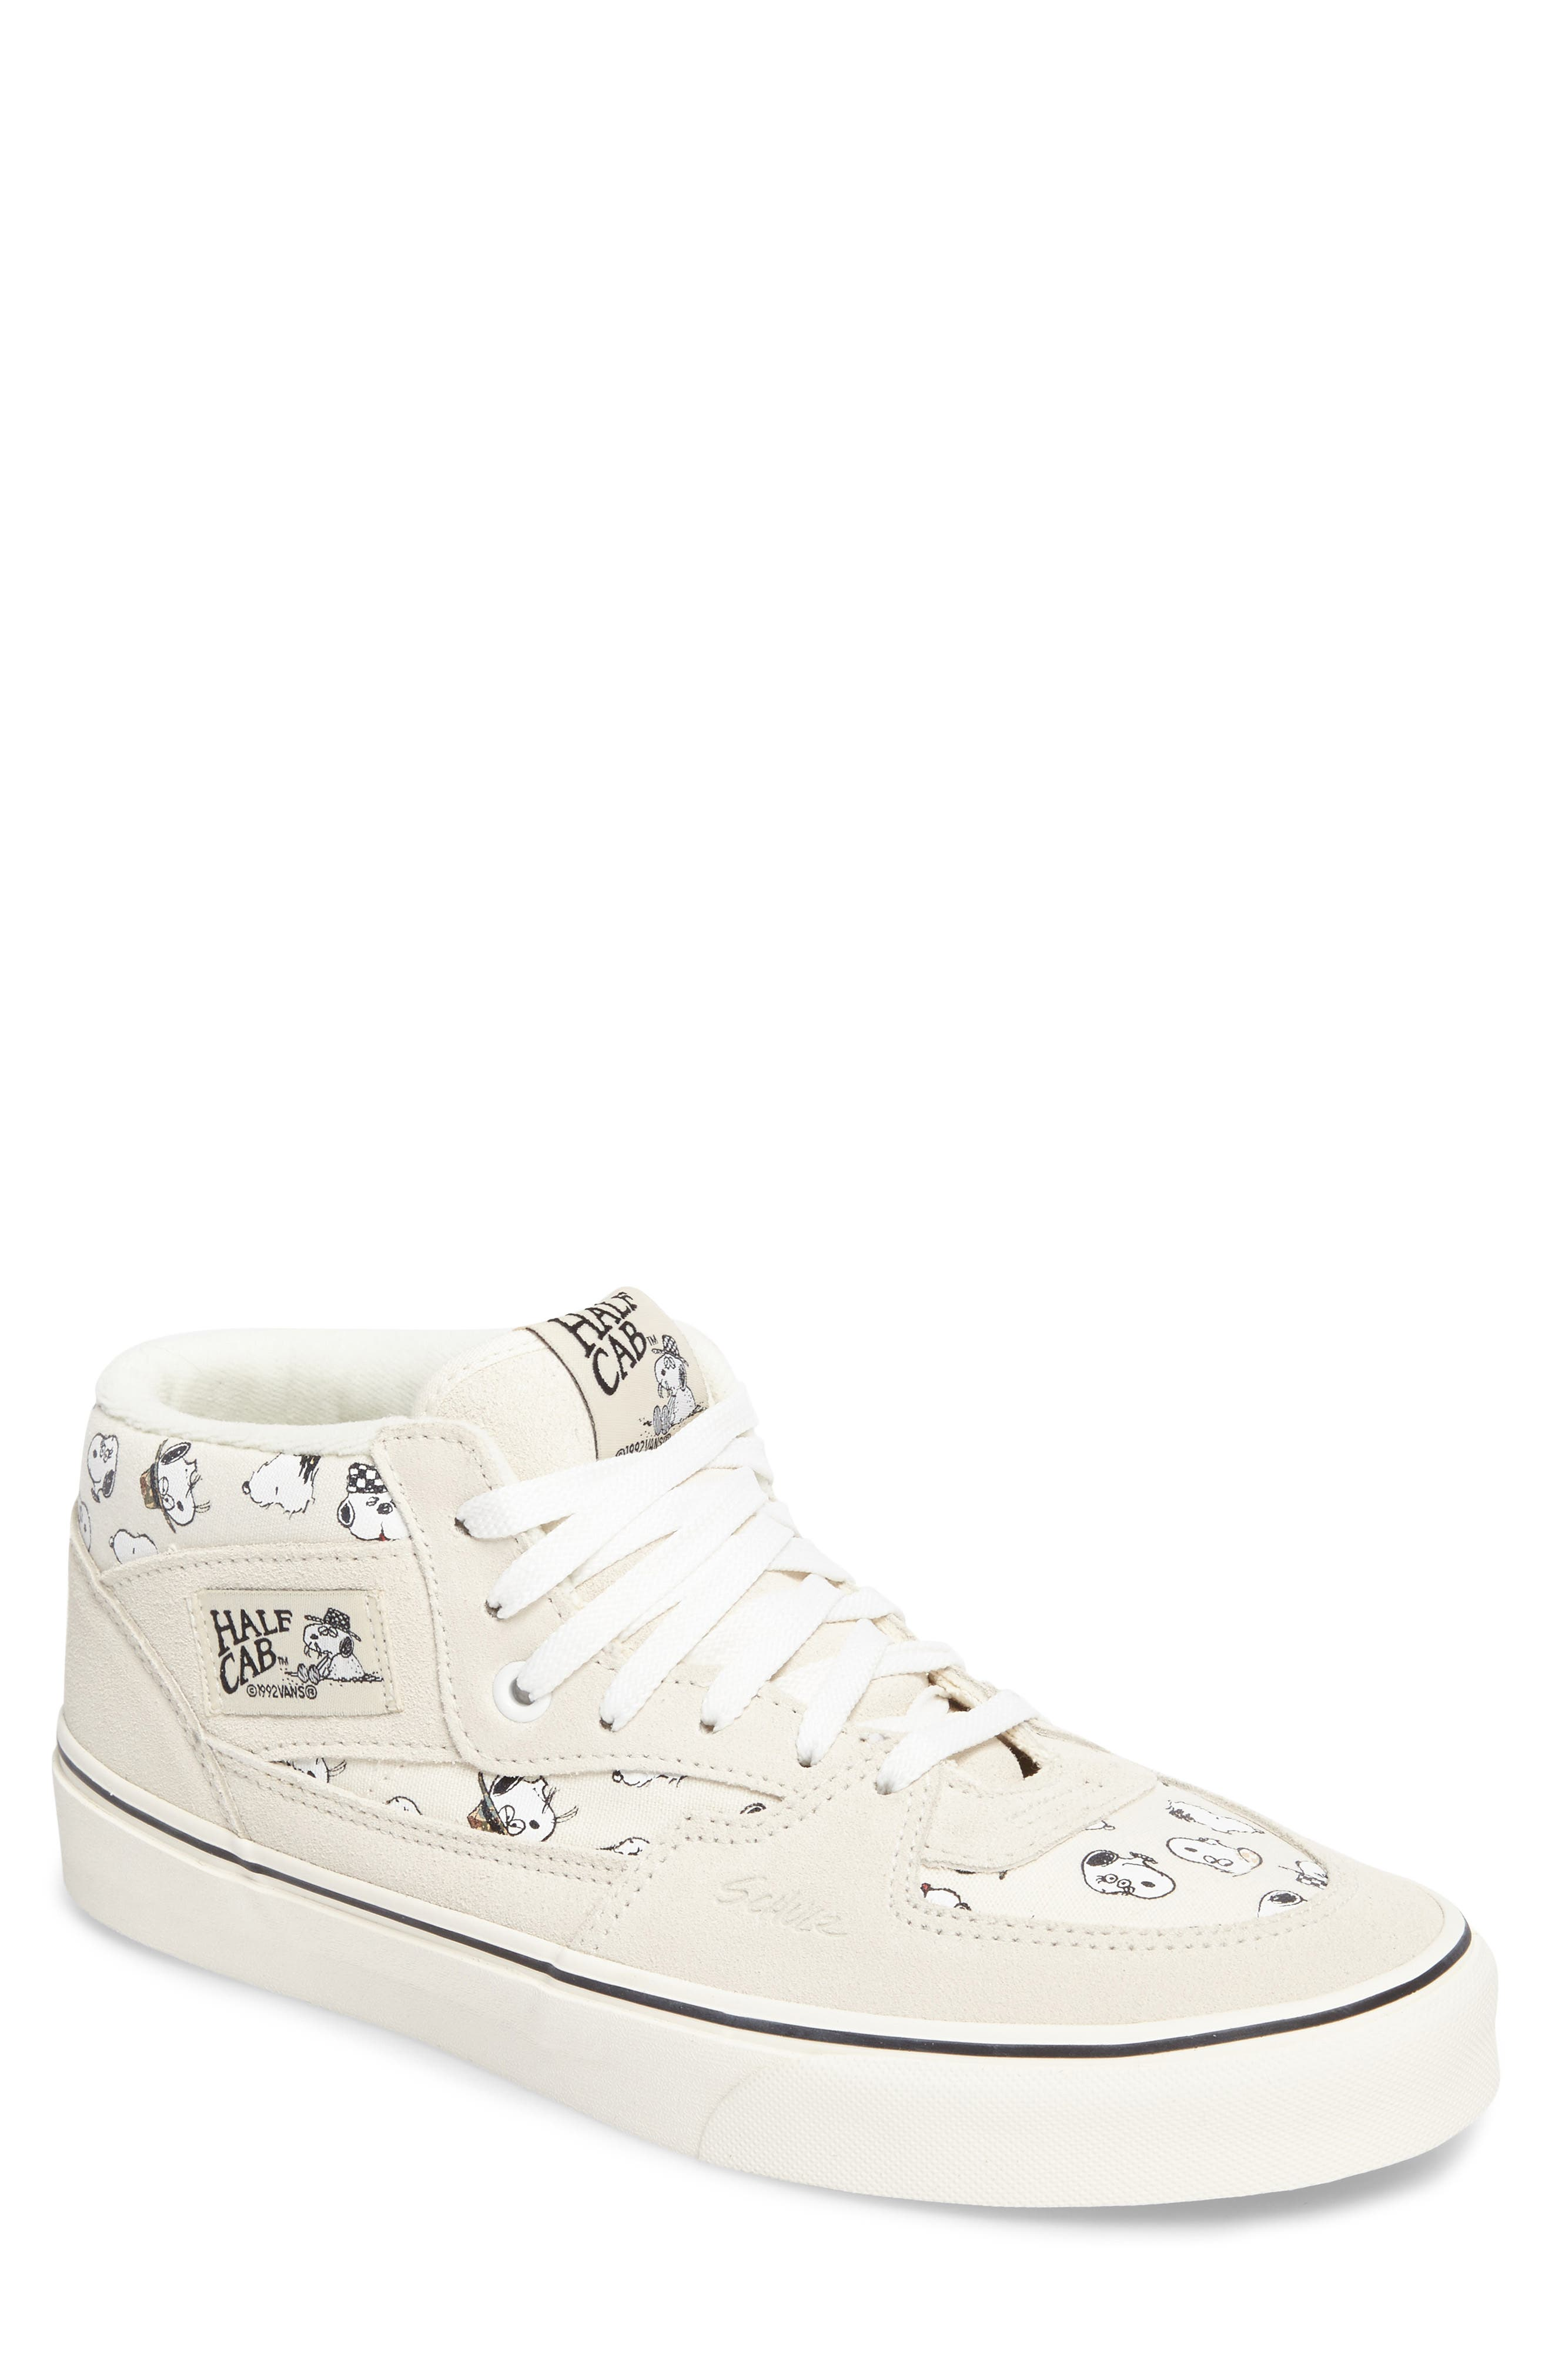 x Peanuts<sup>®</sup> Half Cab Sneaker,                             Main thumbnail 1, color,                             Marshmallow Canvas/Suede